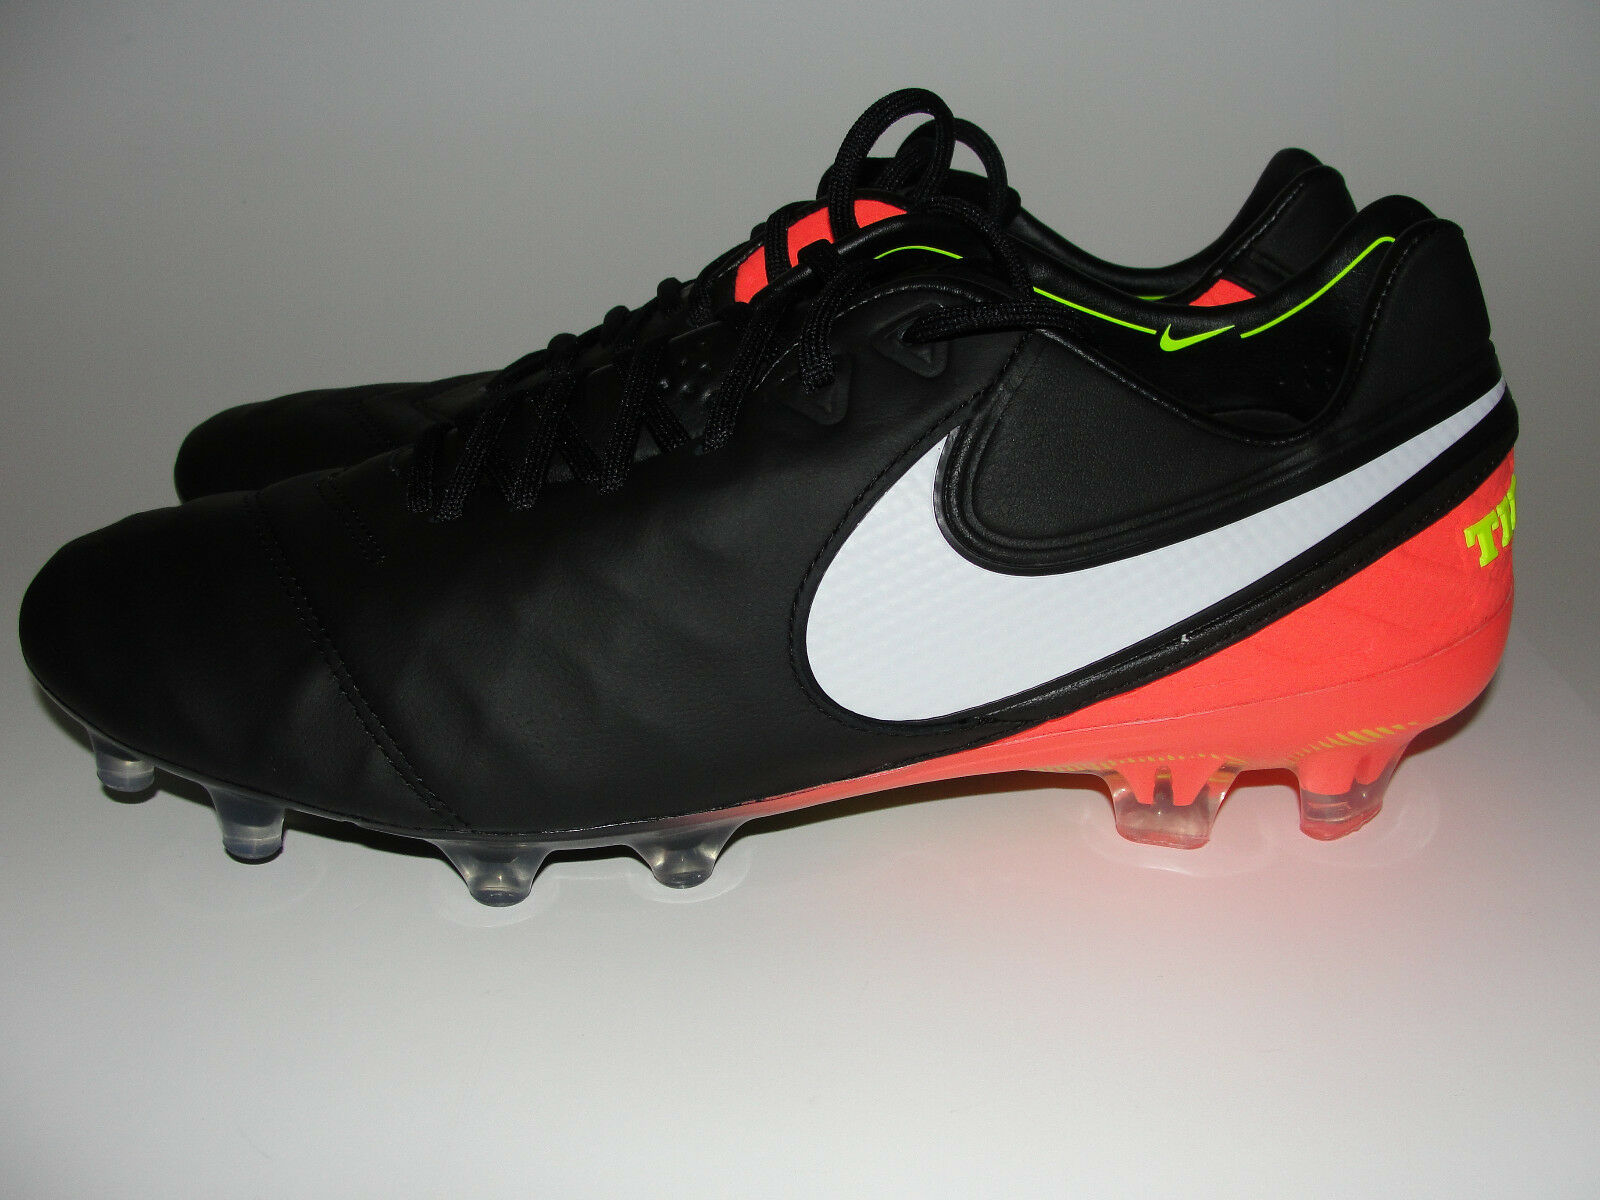 NEW Nike Tiempo Legend VI FG Mens Soccer Cleats Shoes sz 9 Black Orange